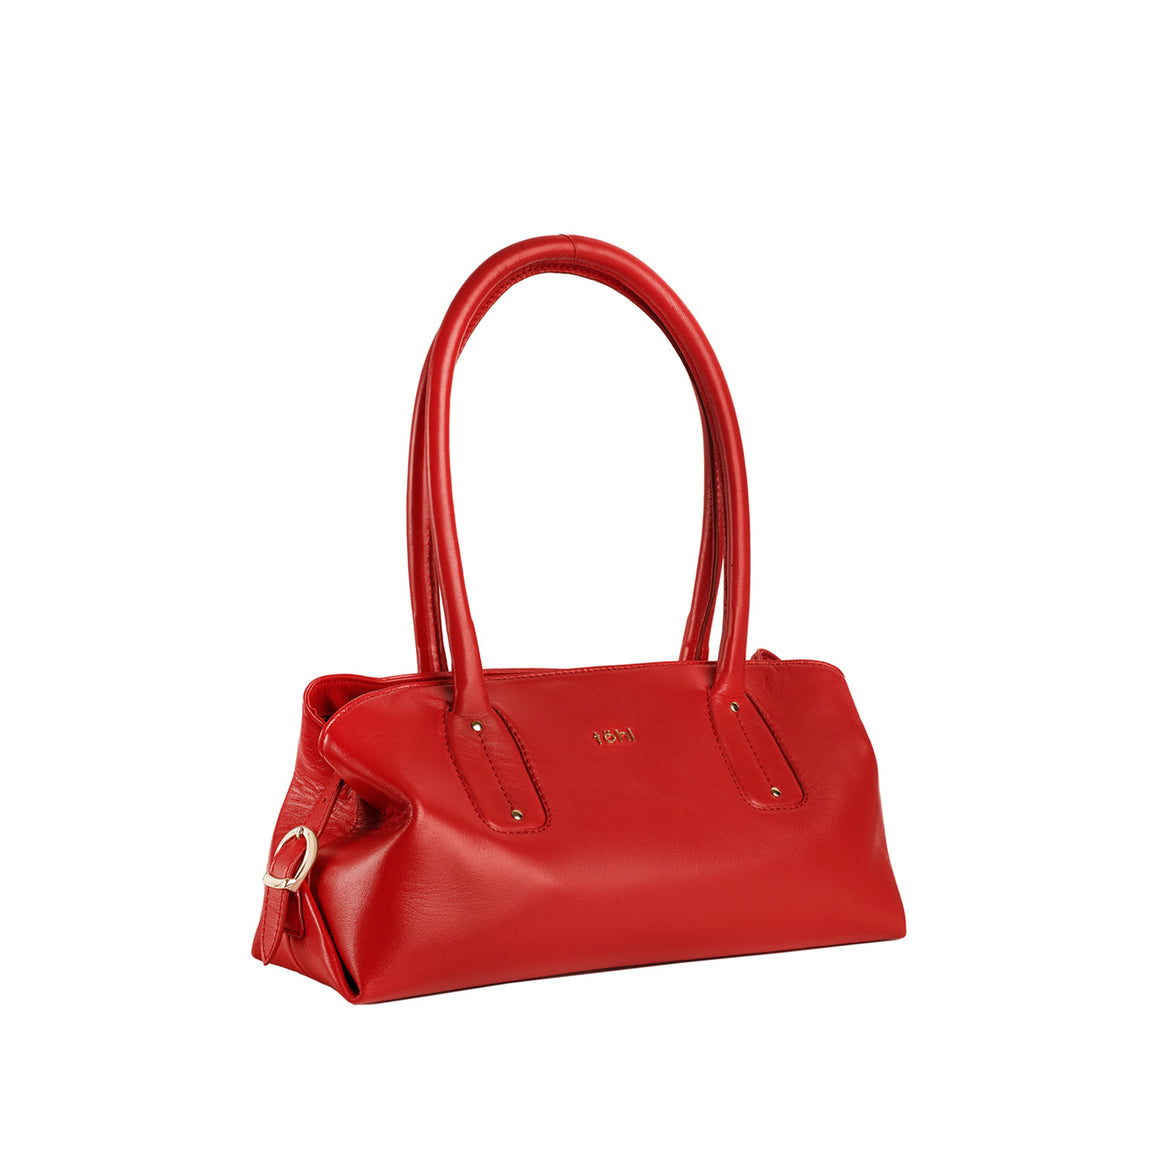 HH 0005 - TOHL OLIVIA WOMEN'S SHOULDER BAG - SPICE RED